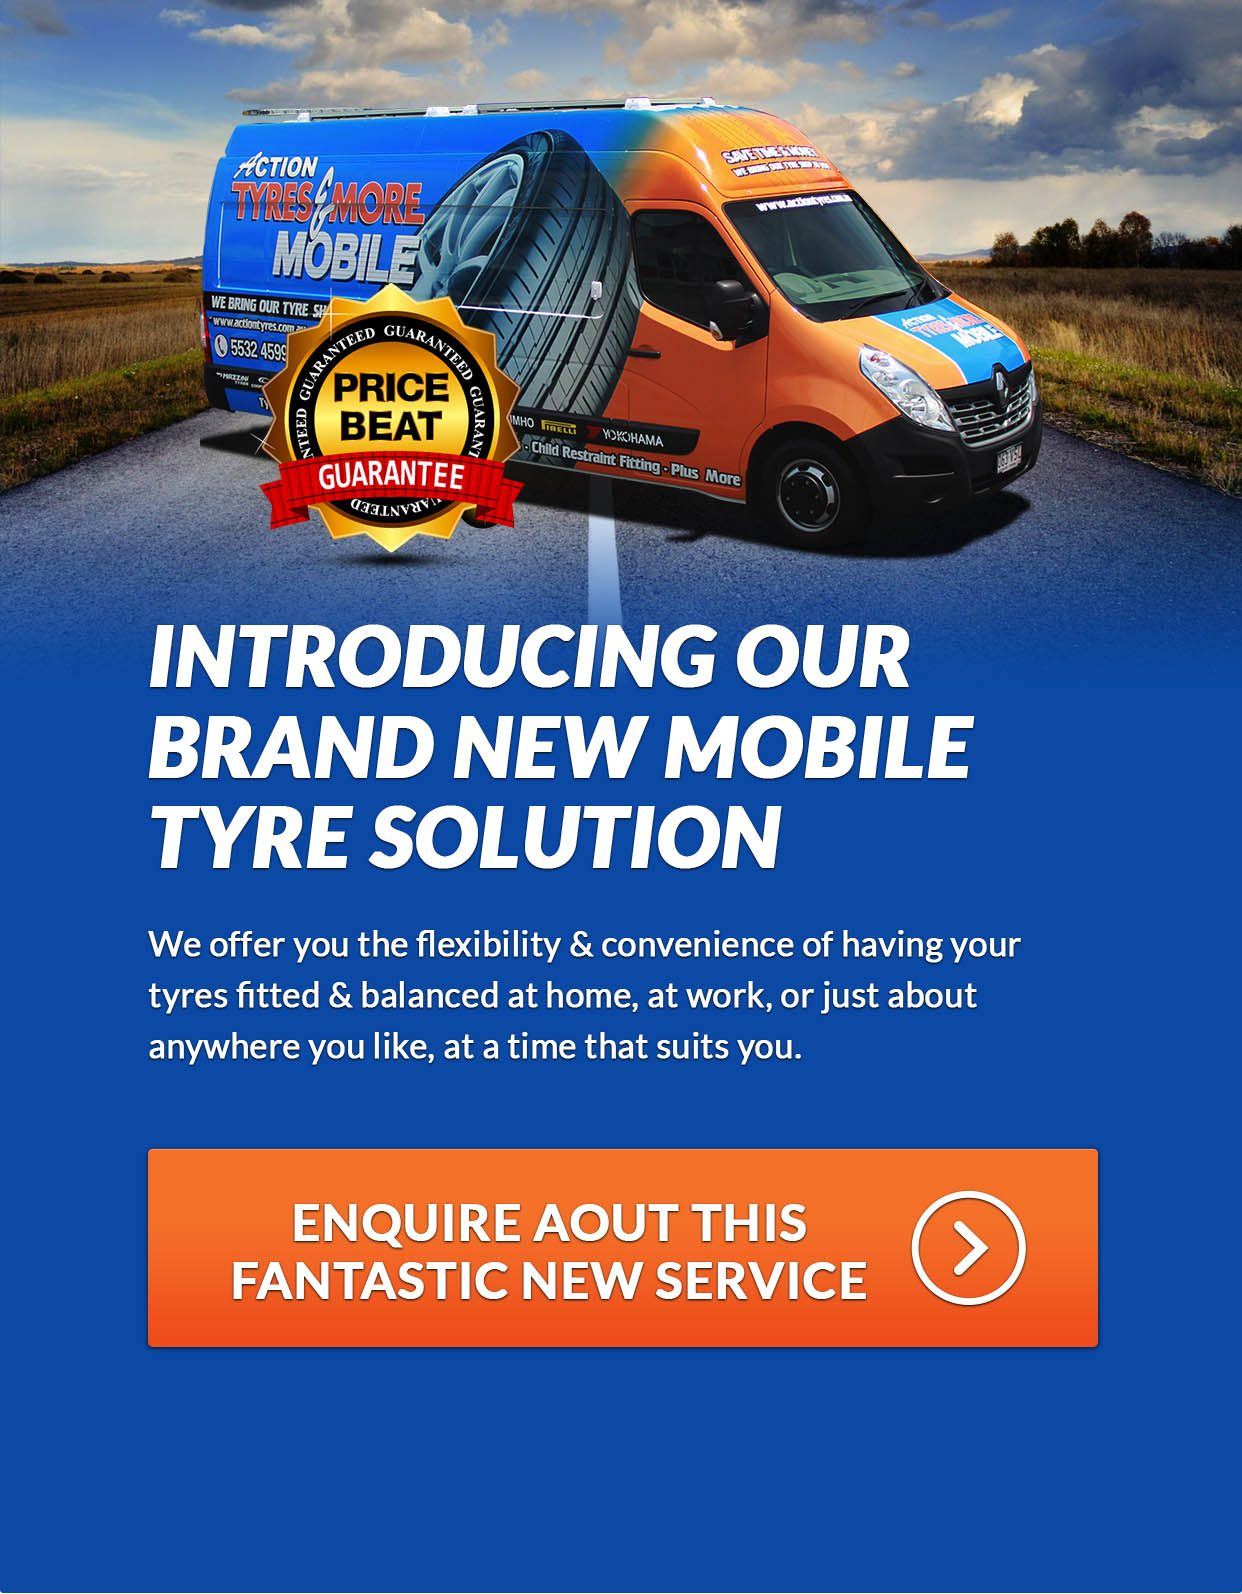 Action Tyres & More Mobile - Introducing Our Brand New Mobile Tyre Solution